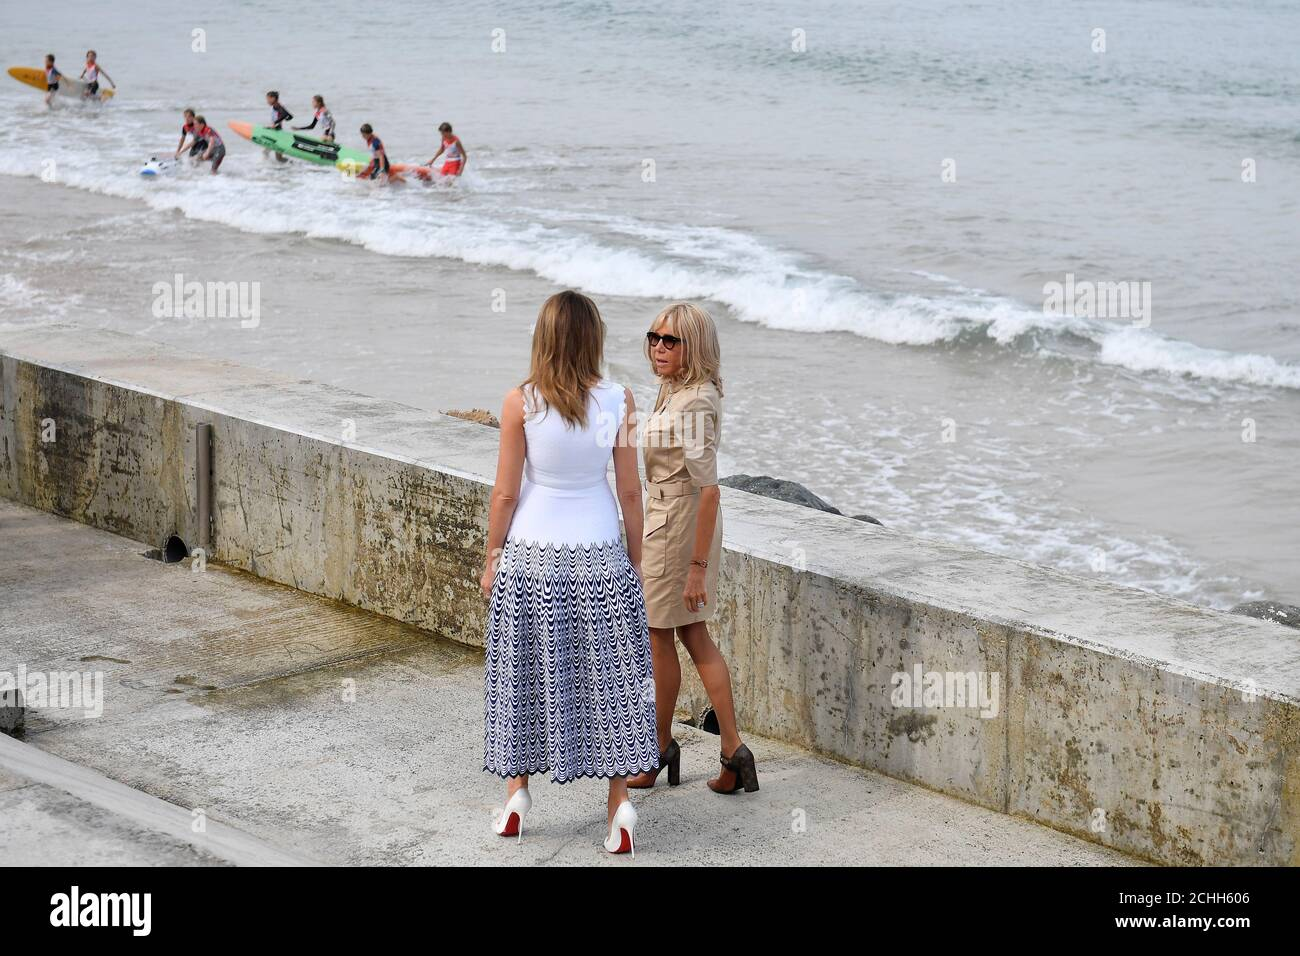 Emmanuel Macron Beach High Resolution Stock Photography And Images Alamy